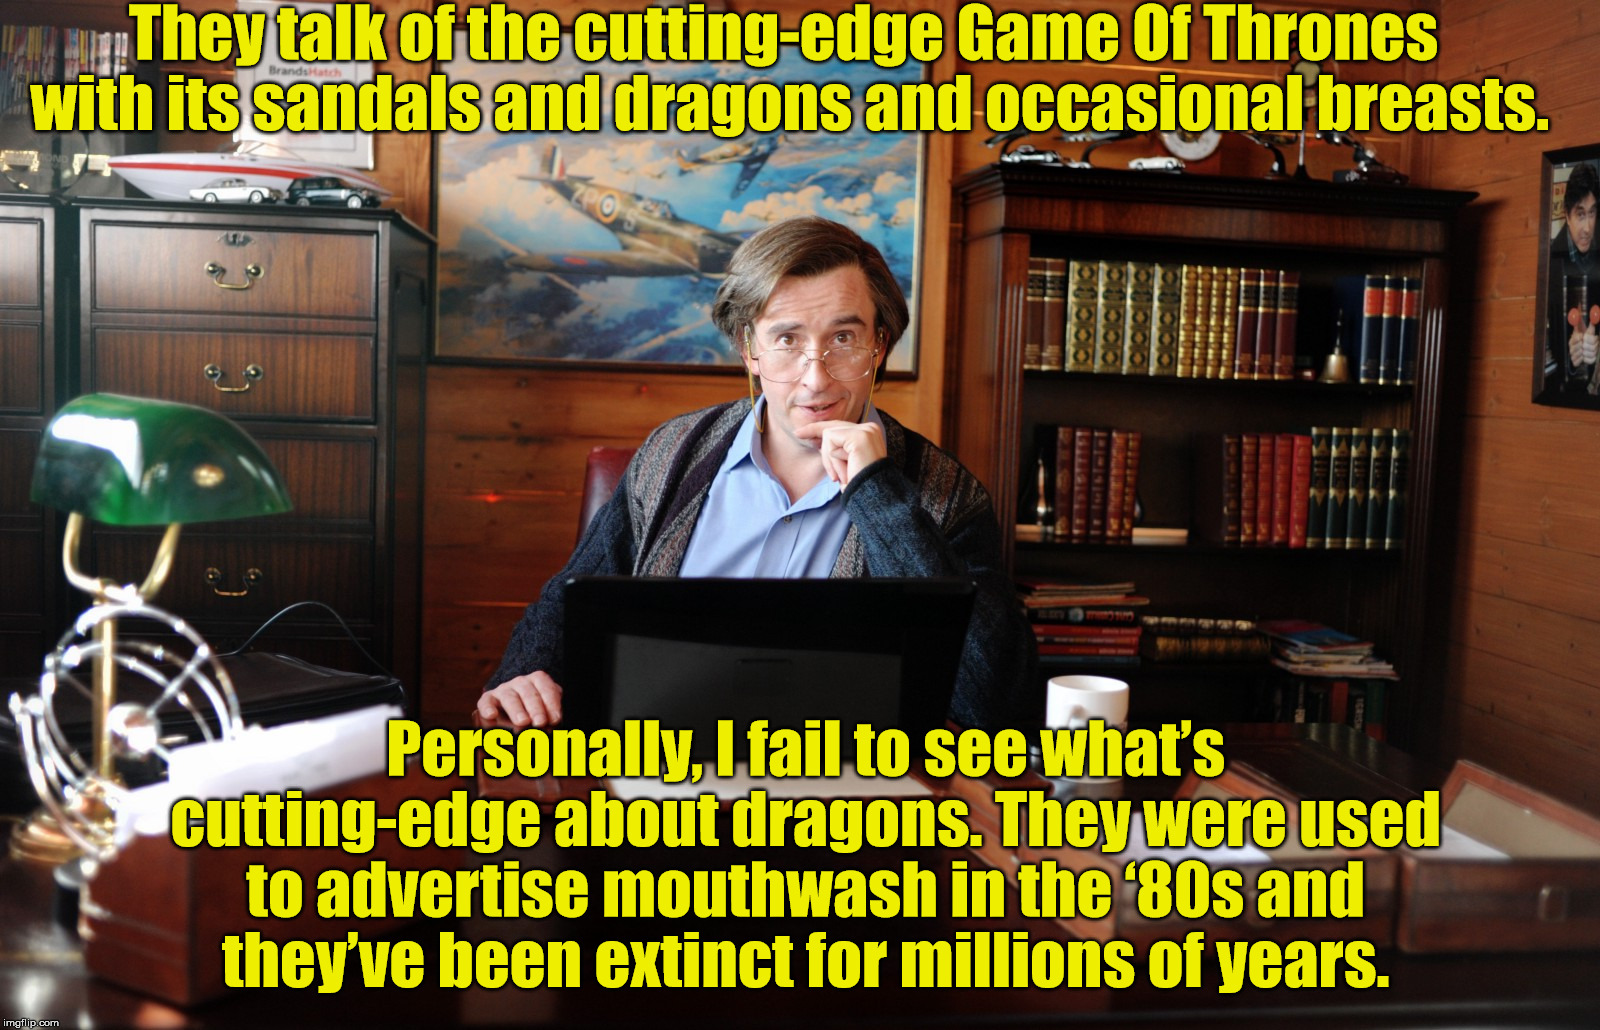 Alan Partridge | They talk of the cutting-edge Game Of Thrones with its sandals and dragons and occasional breasts. Personally, I fail to see what's cutting- | image tagged in alan partridge,game of thrones | made w/ Imgflip meme maker